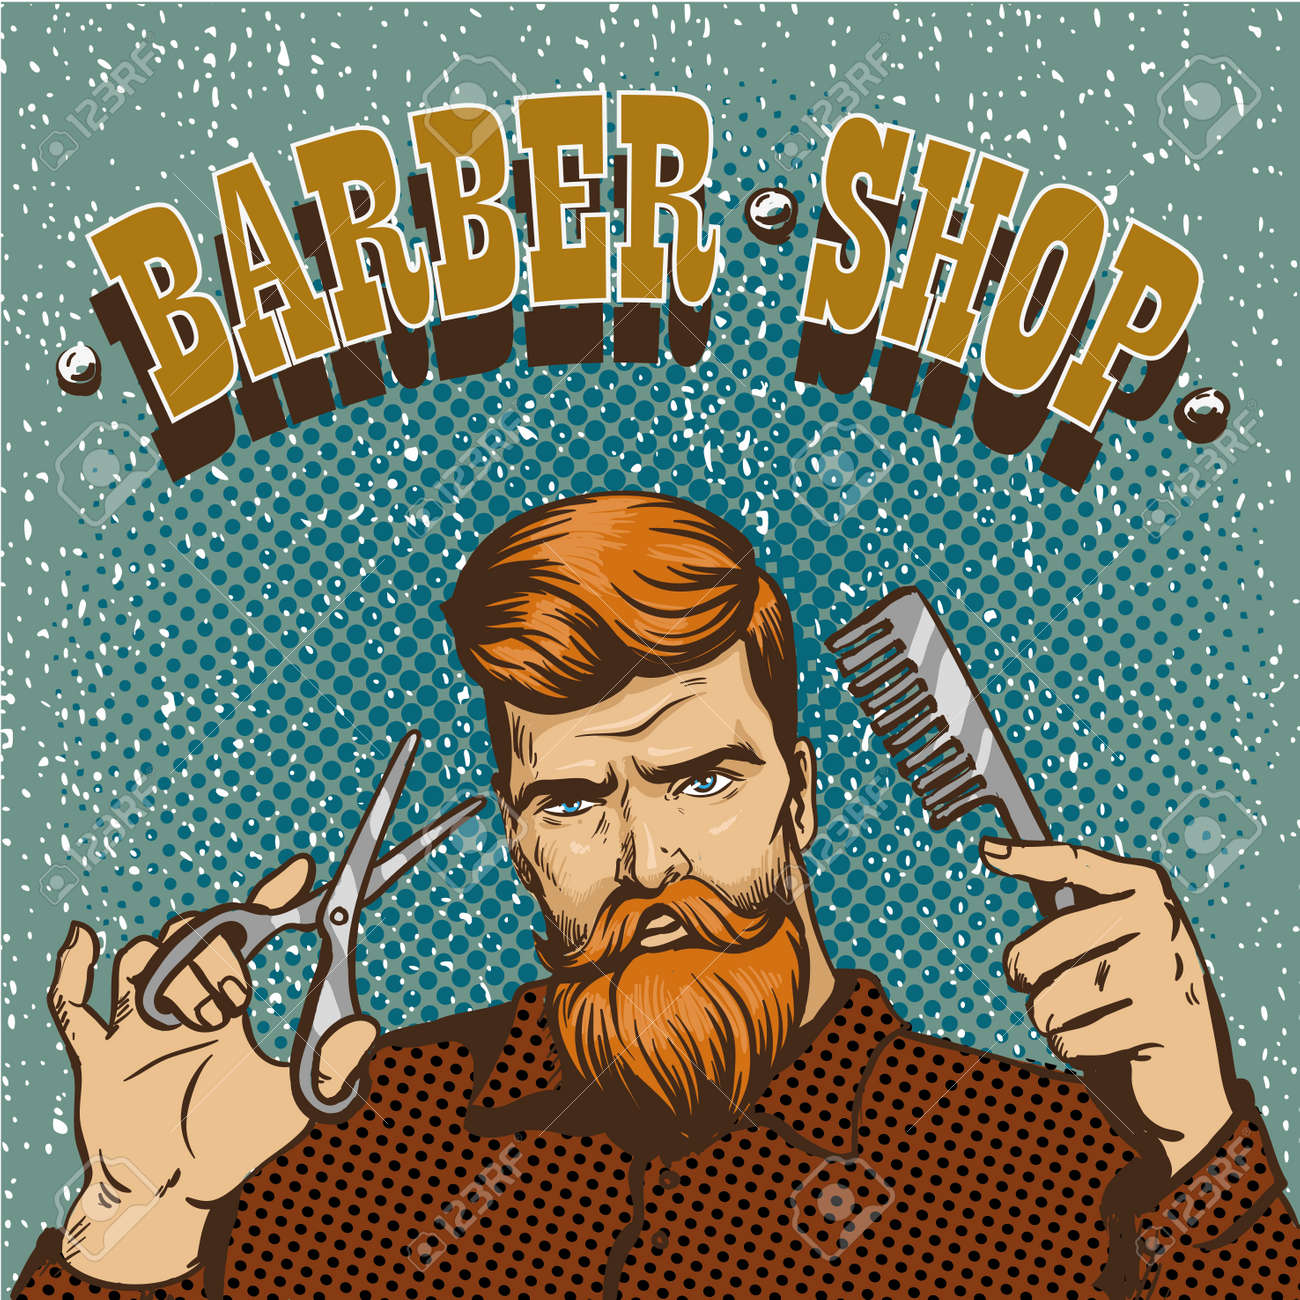 Barber Shop Vecteur Affiche Illustration. Hipster Styliste ...